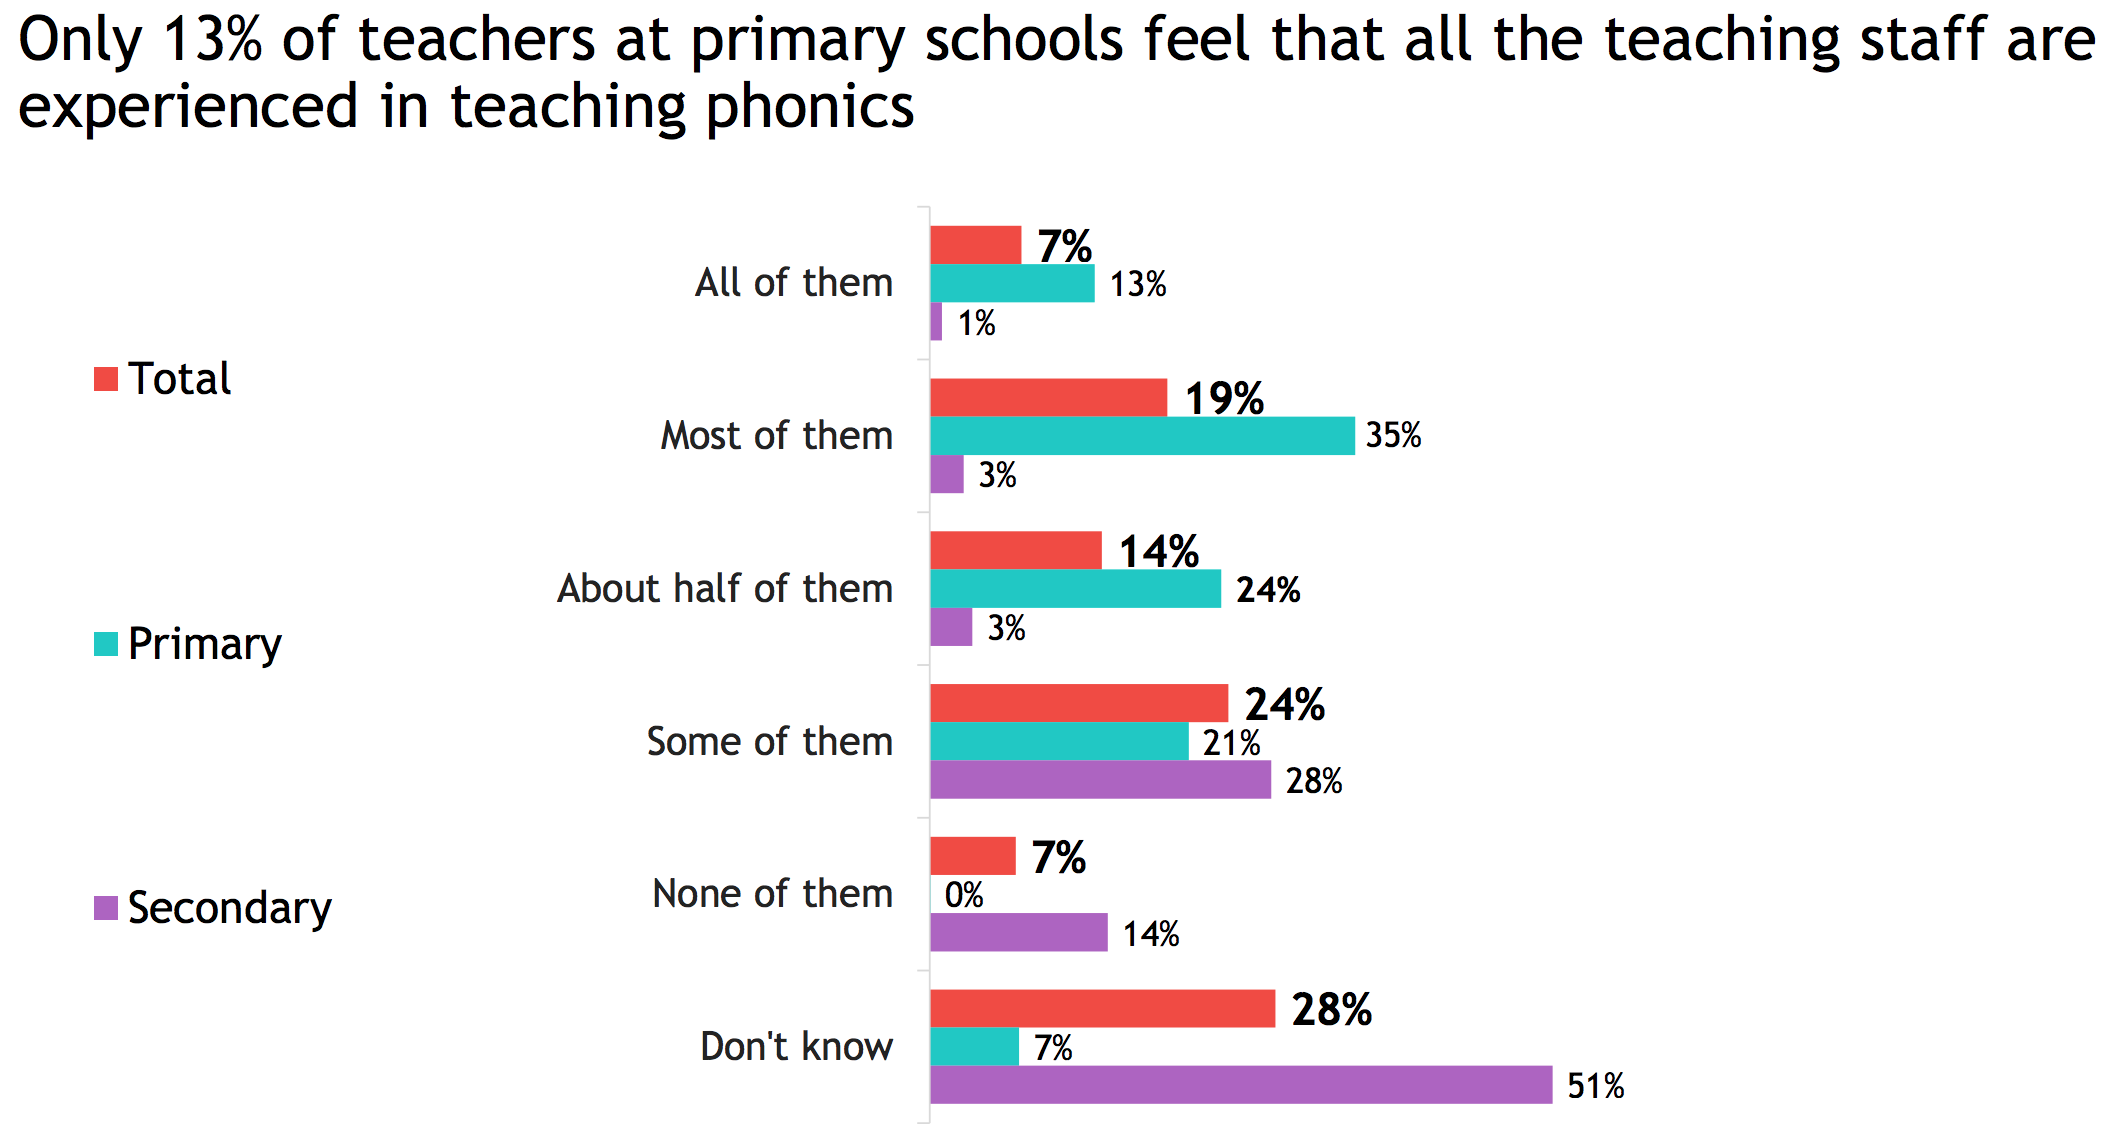 Ofsted's teacher attitude survey highlights a lack of experience in teaching phonics